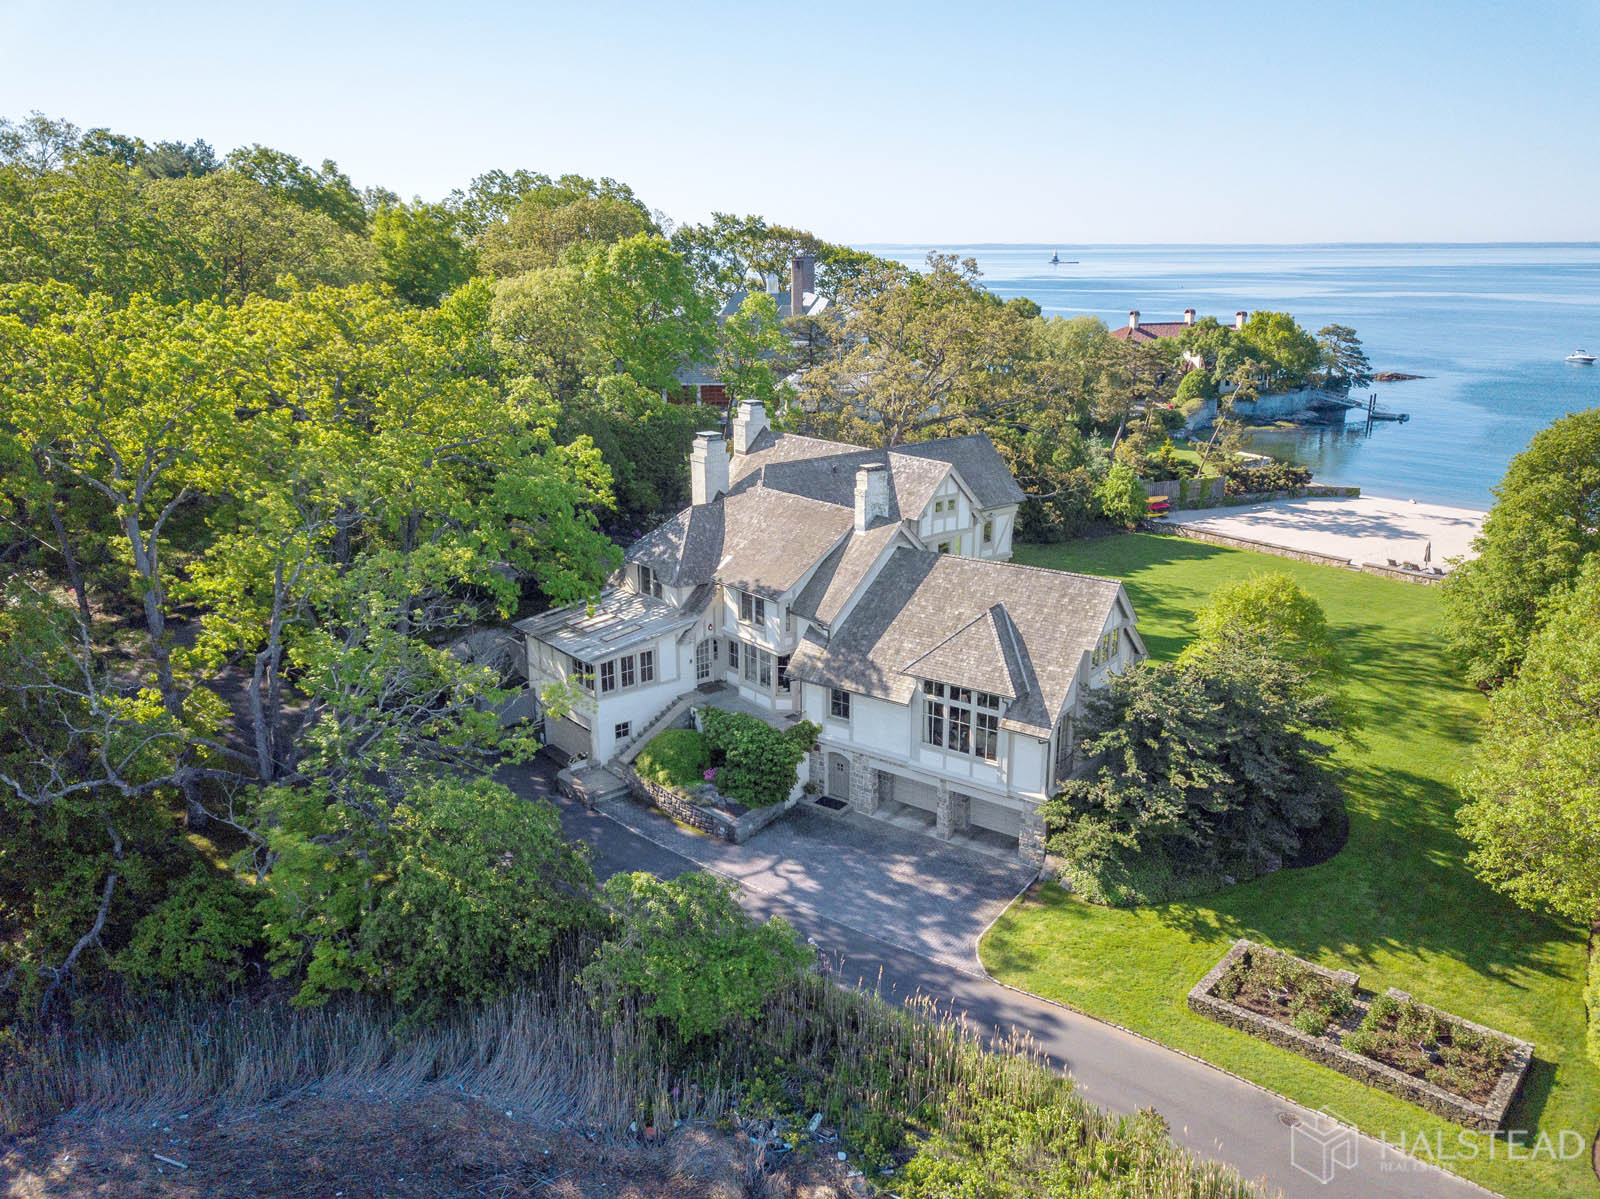 8 Butlers Island Road, Darien, Connecticut, 06820, $8,495,000, Property For Sale, Halstead Real Estate, Photo 1